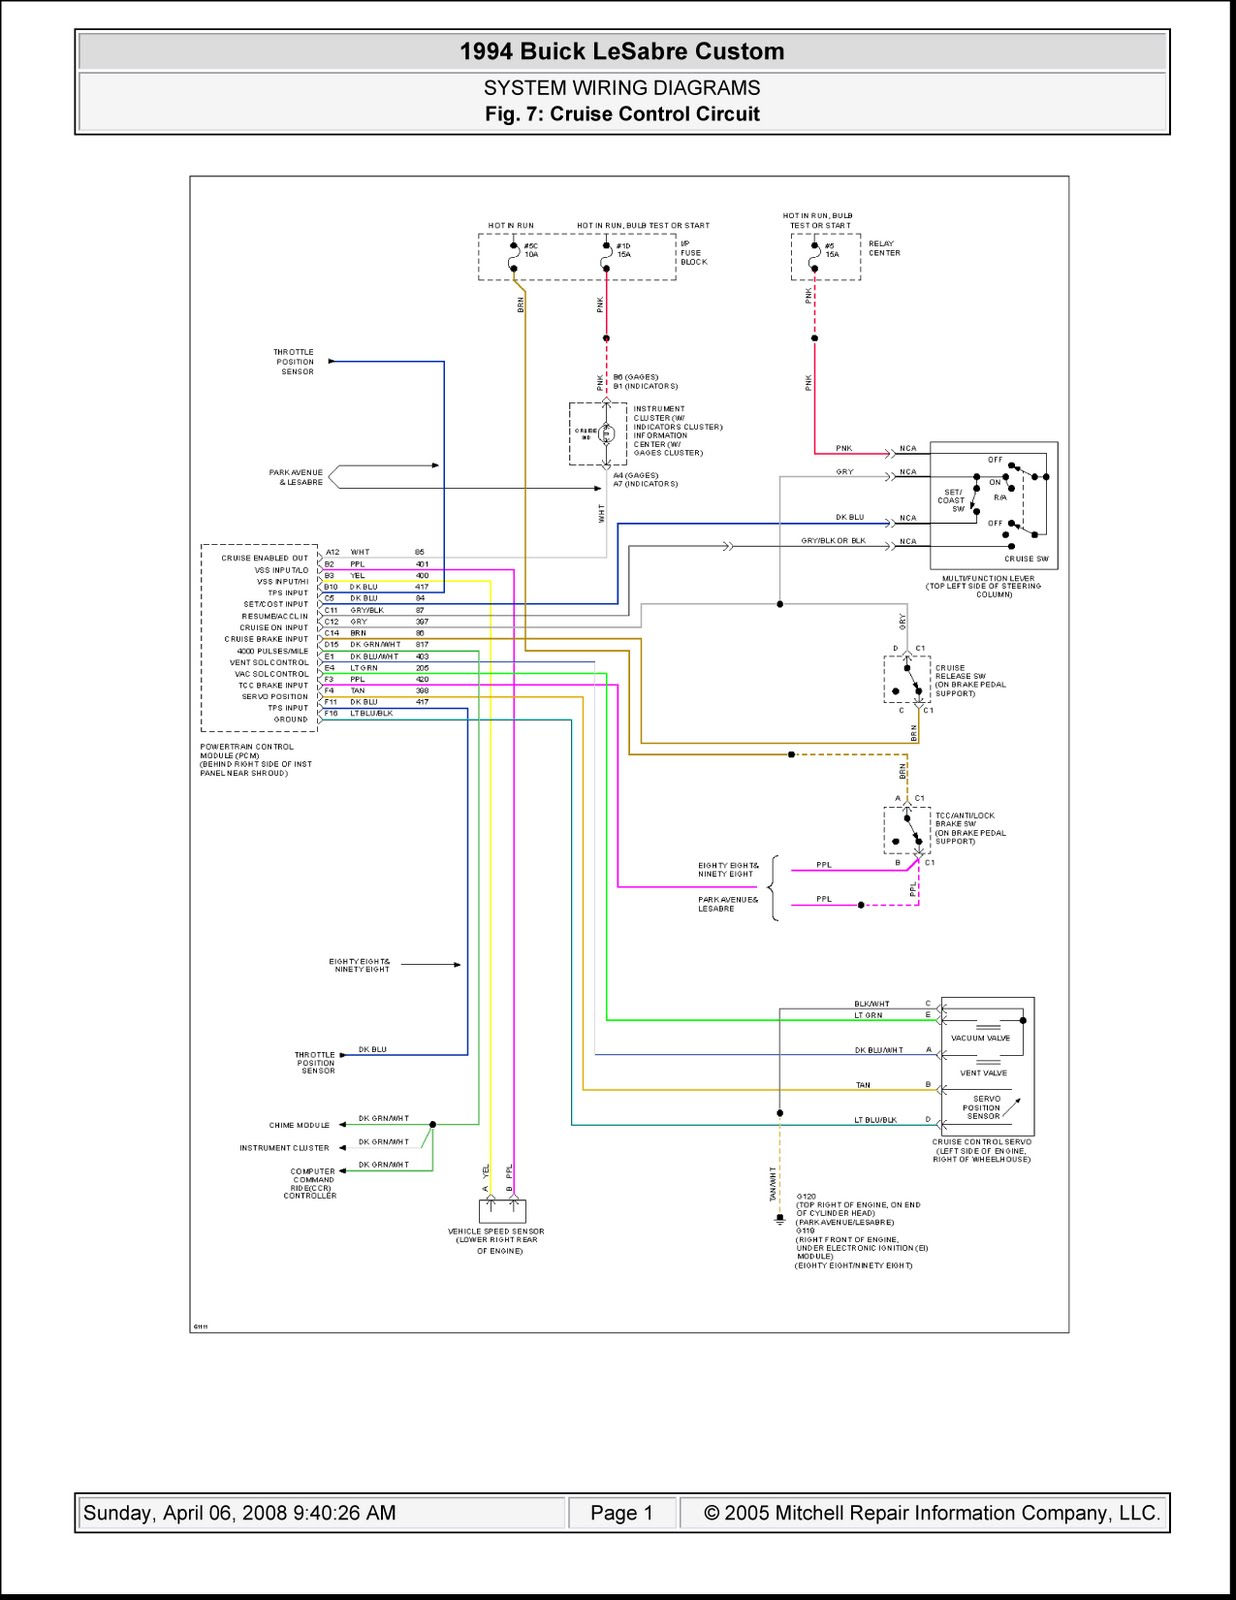 1997 buick lesabre radio wiring diagram 3 wire submersible pump 91 century get free image about